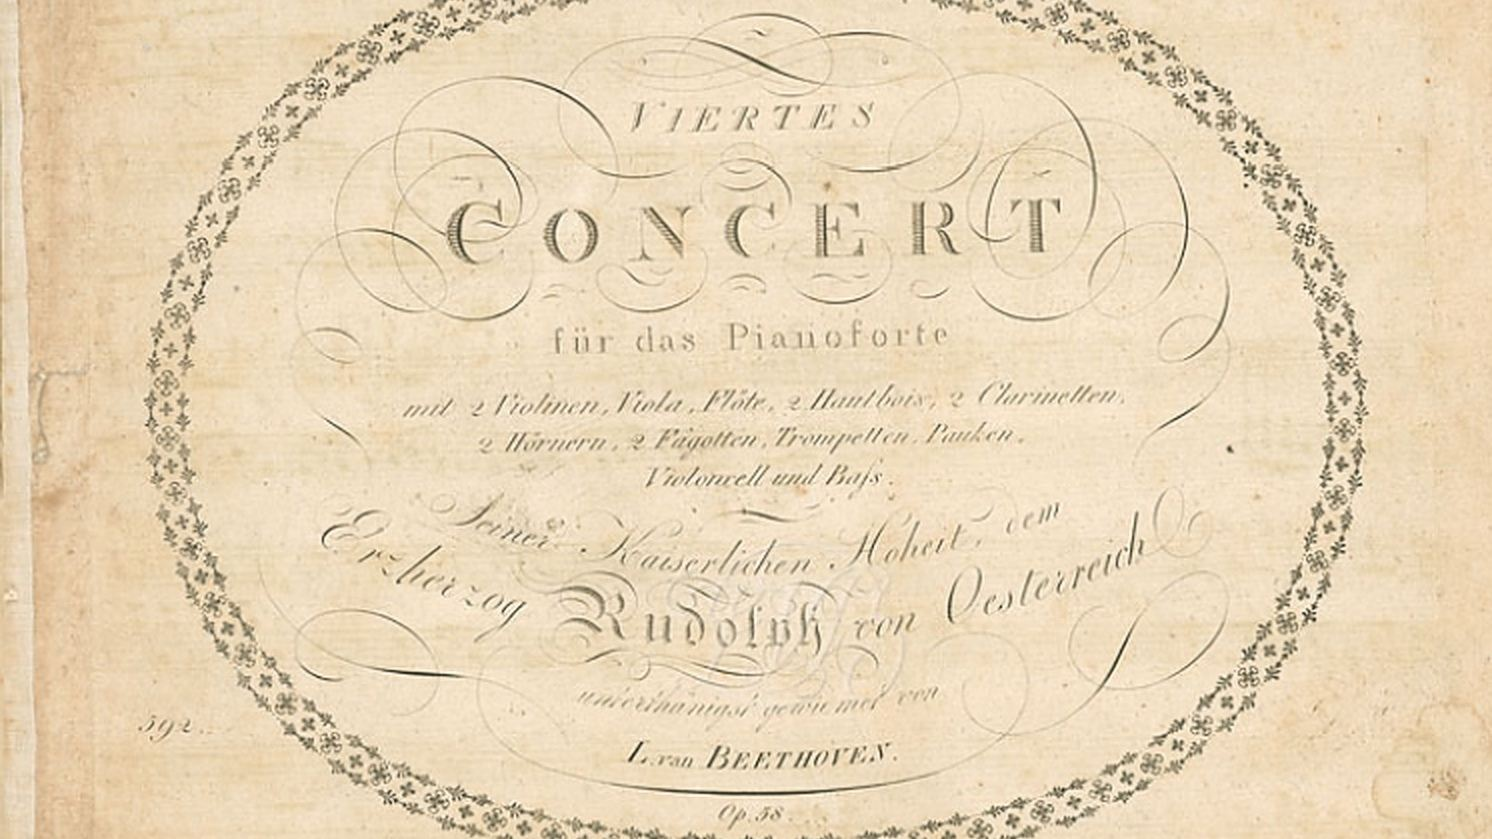 Beethoven's Fourth Piano Concerto: An Intimate and Sublime Dialogue